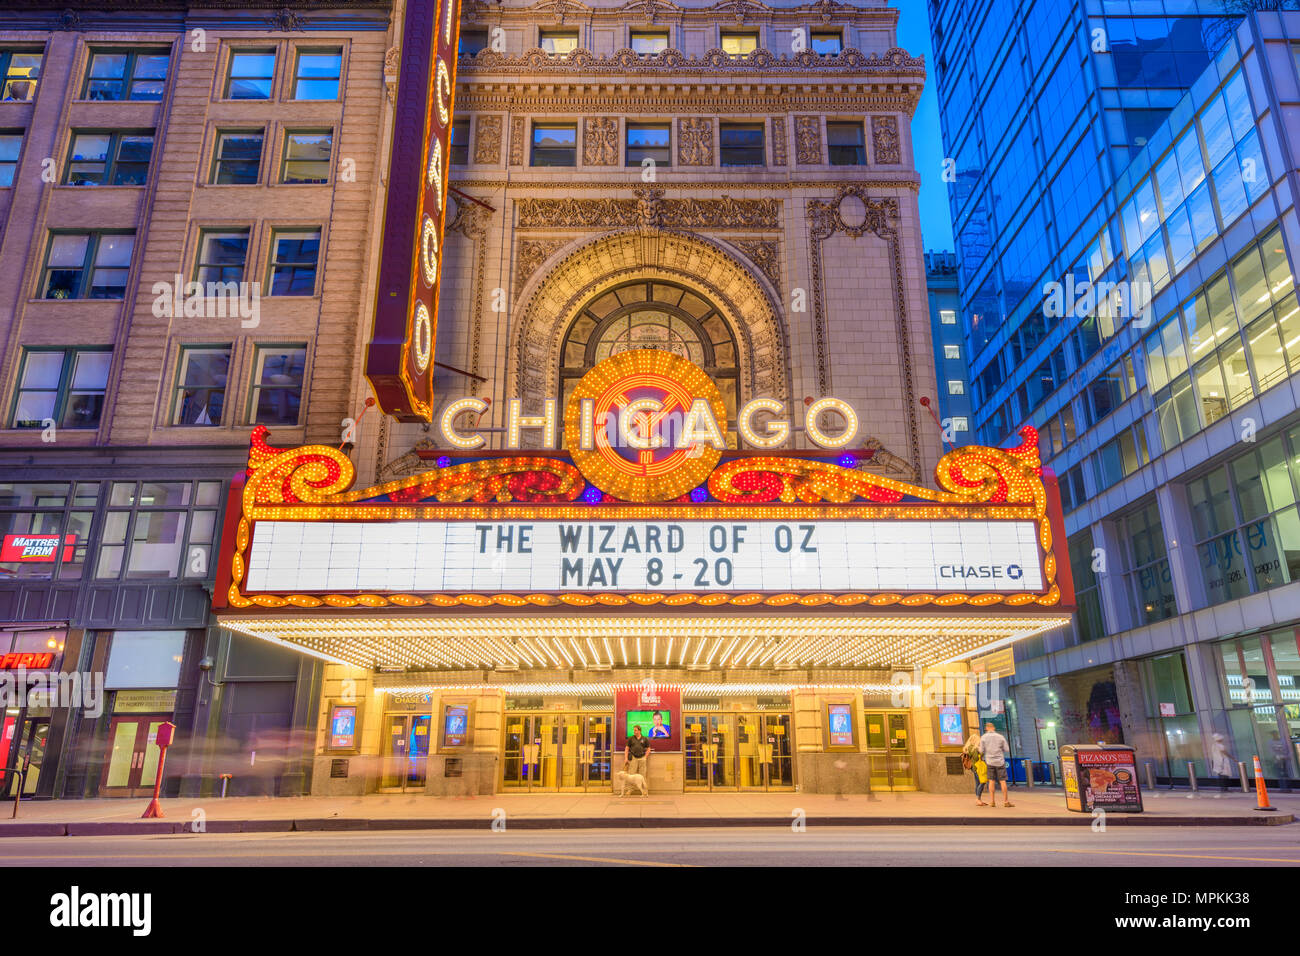 CHICAGO, ILLINOIS - MAY 10, 2018: The landmark Chicago Theatre on state Street at twilight. The historic theater dates from 1921. - Stock Image